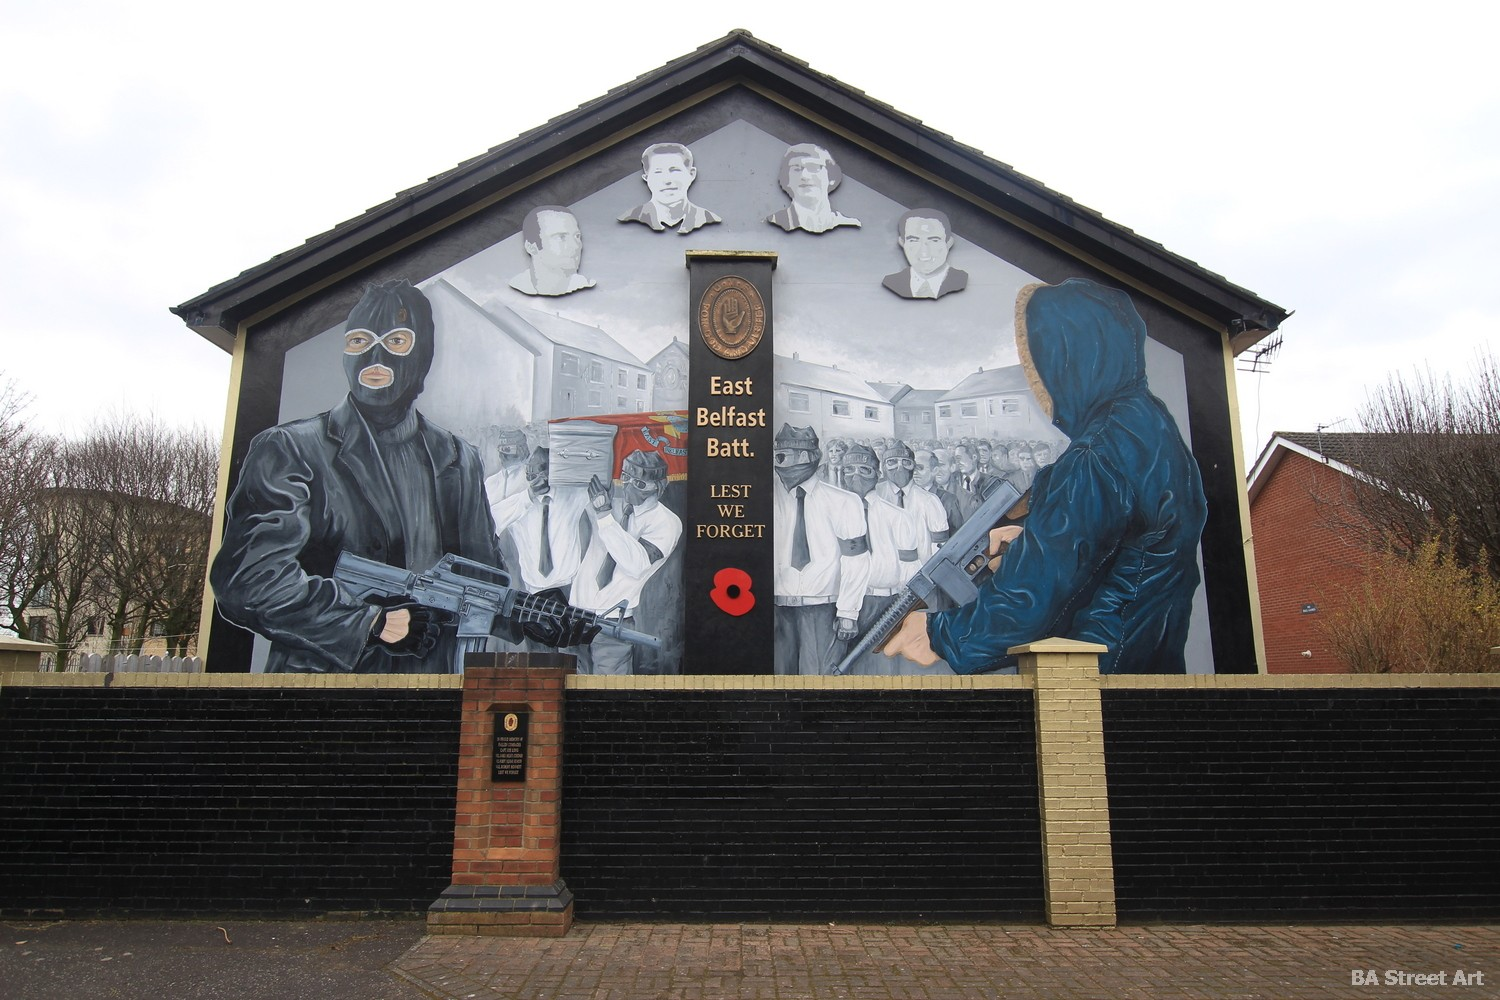 east belfast battalion victims political mural propaganda northern ireland balaclavas machine guns sectarian protestant